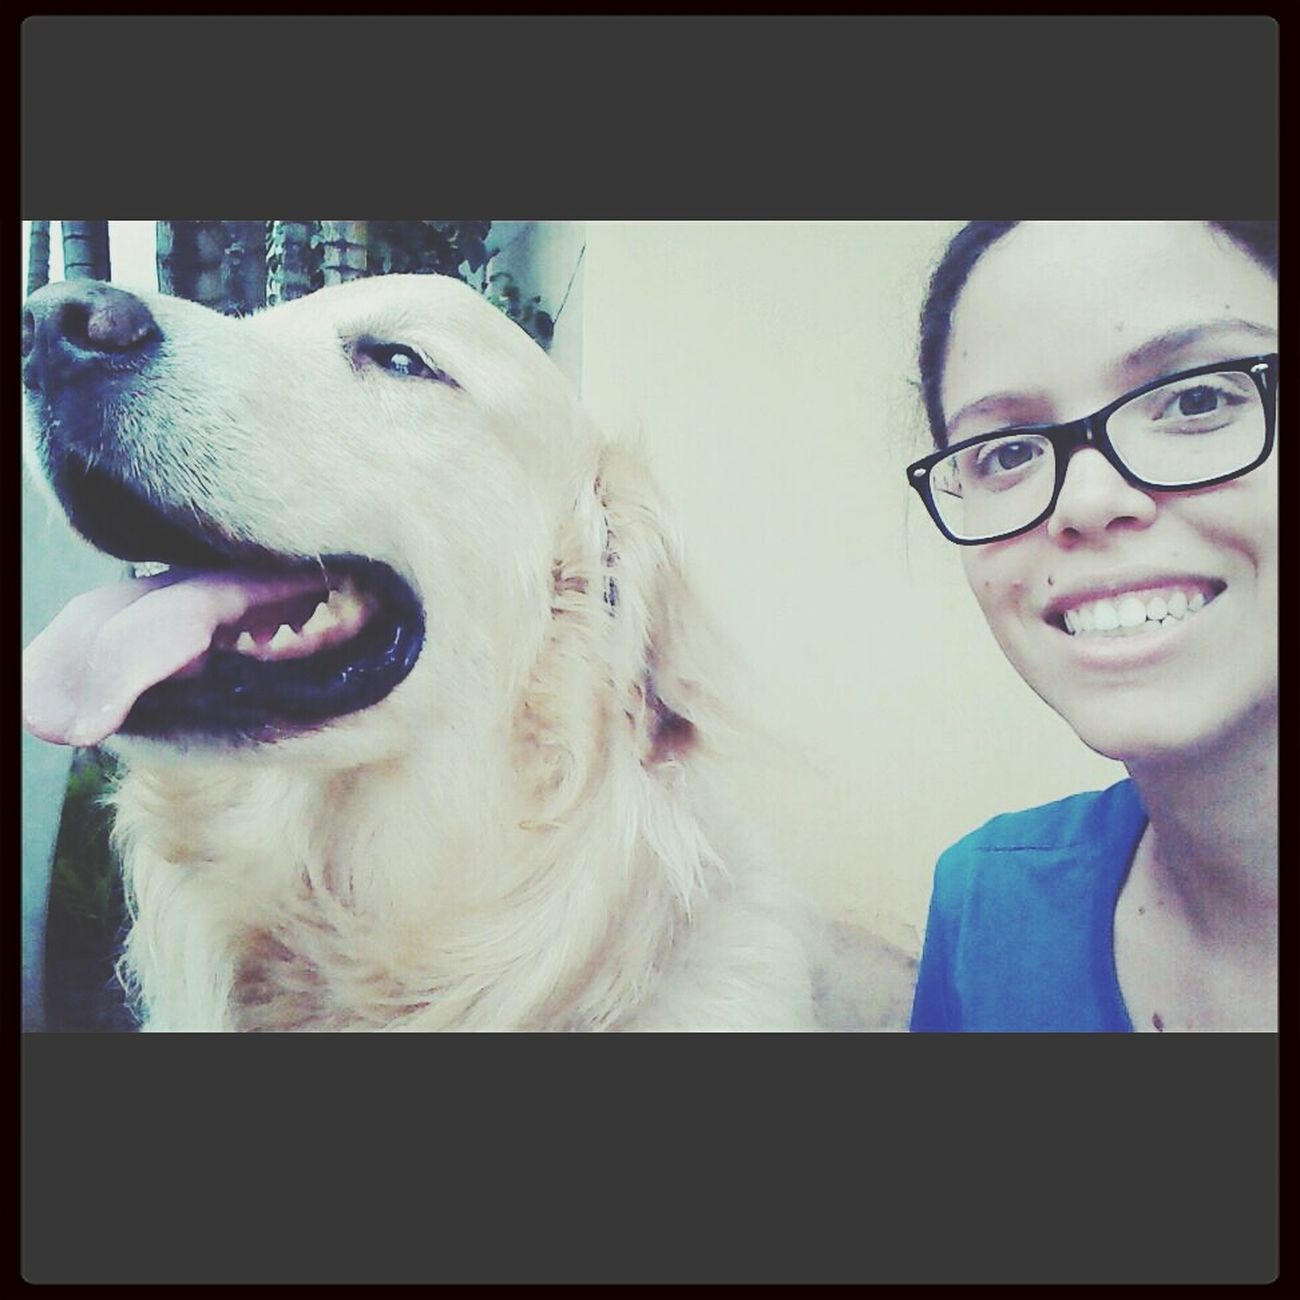 Playing With The Animals Lovedogs Ilovegoldenretrievers Selfie ✌